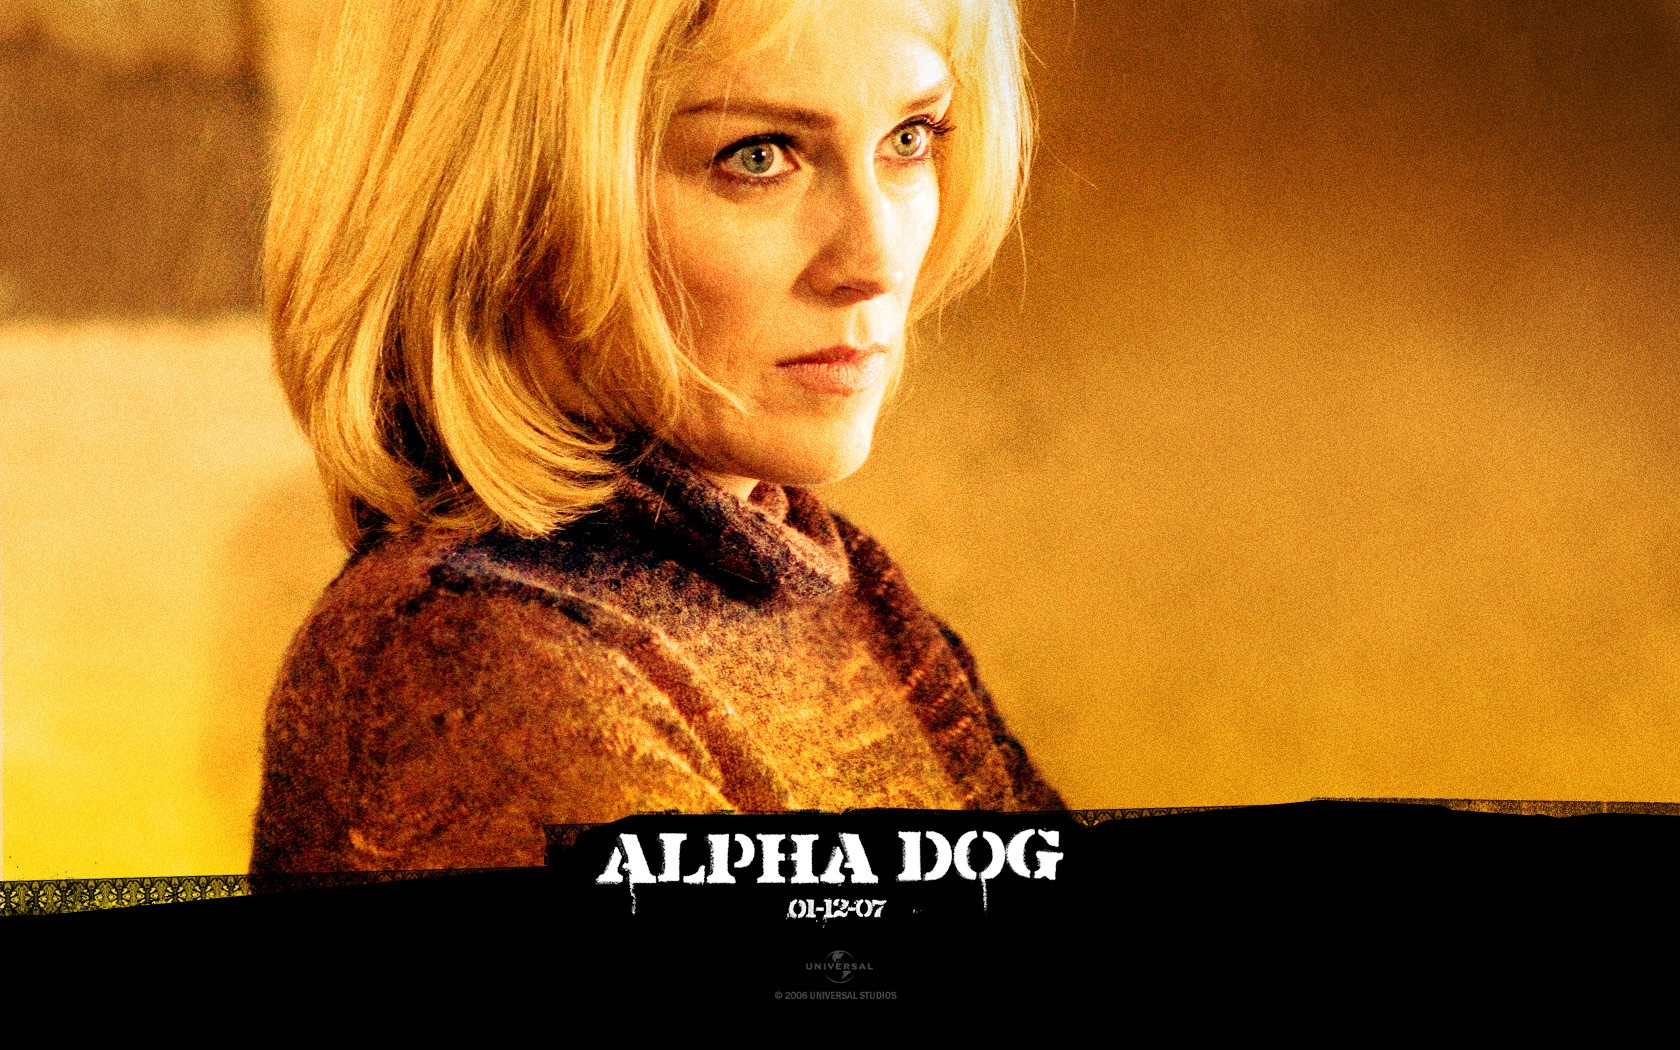 Un wallpaper di Sharon Stone nel film 'Alpha Dog'